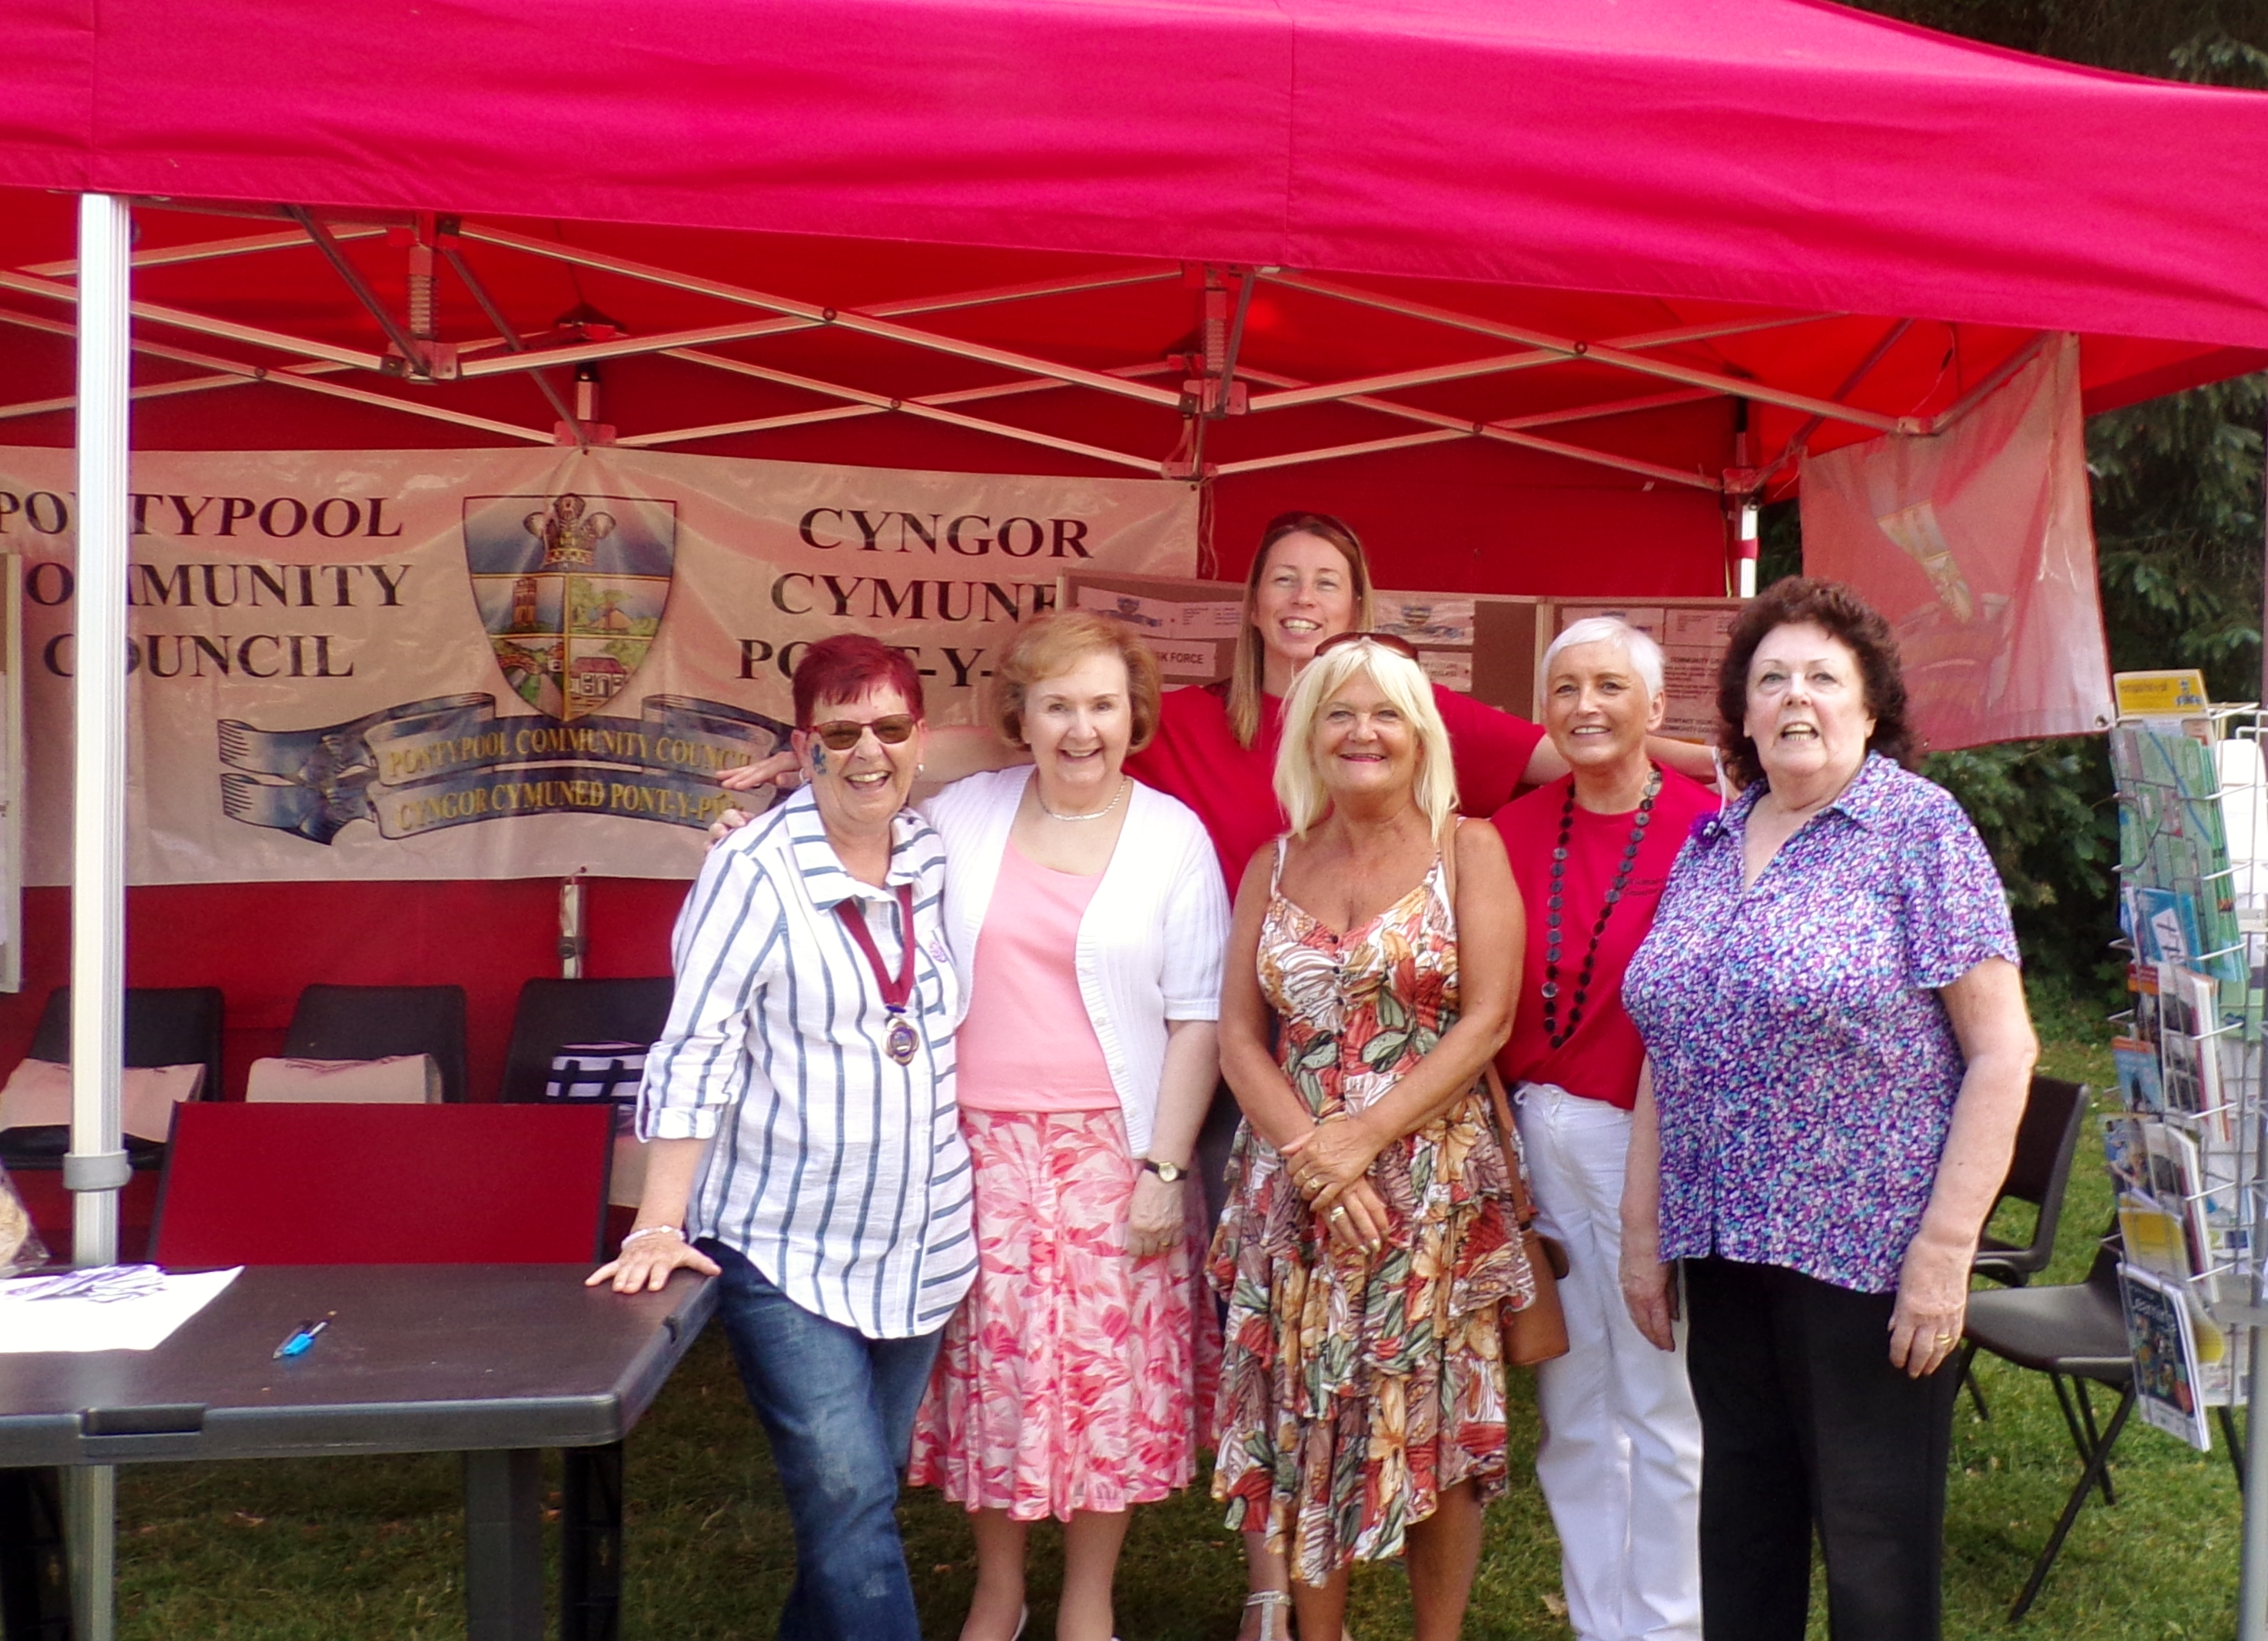 pontypool community council stand